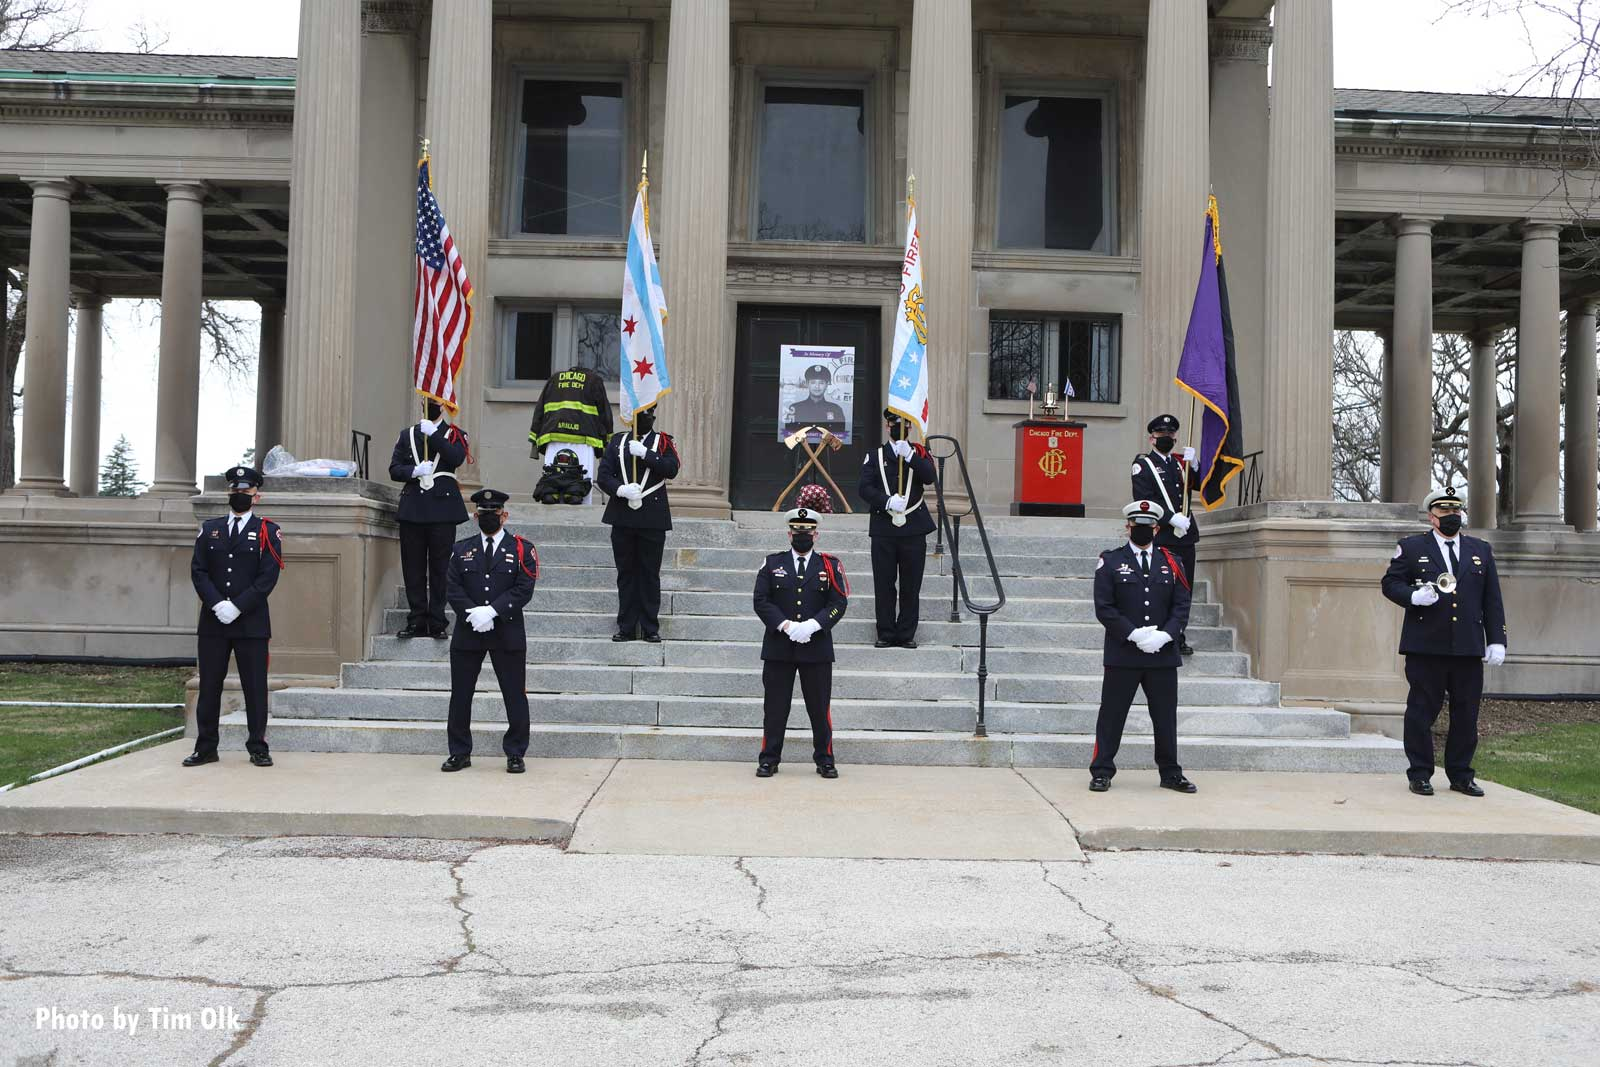 Chicago firefighters at the funeral for the late Firefighter Araujo